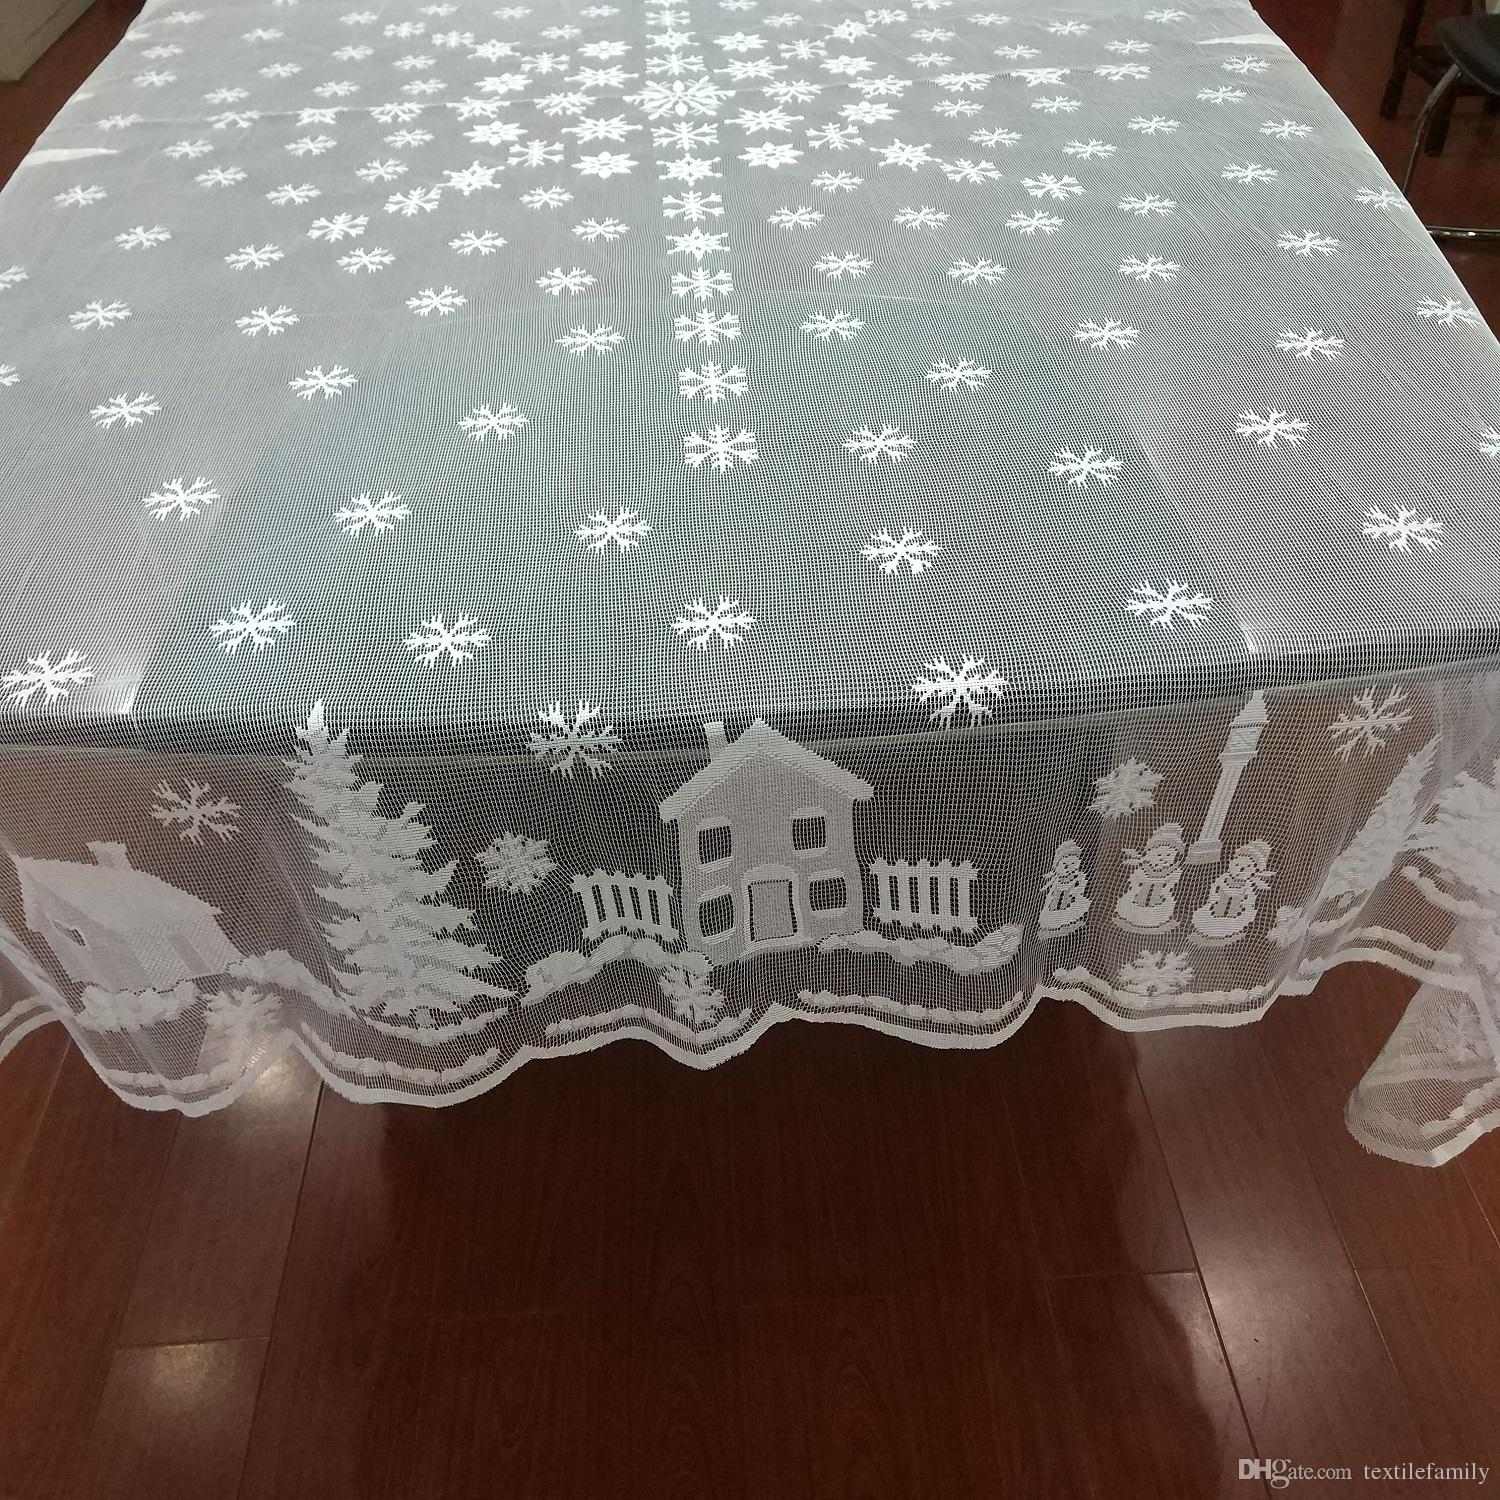 Christmas Tablecloths Australia White Christmas Lace Snowflake Tablecloths Round Xmas Tree Lace Snowflower Table Cover Snowman Diver Snow Deer Home Decor Table Cover